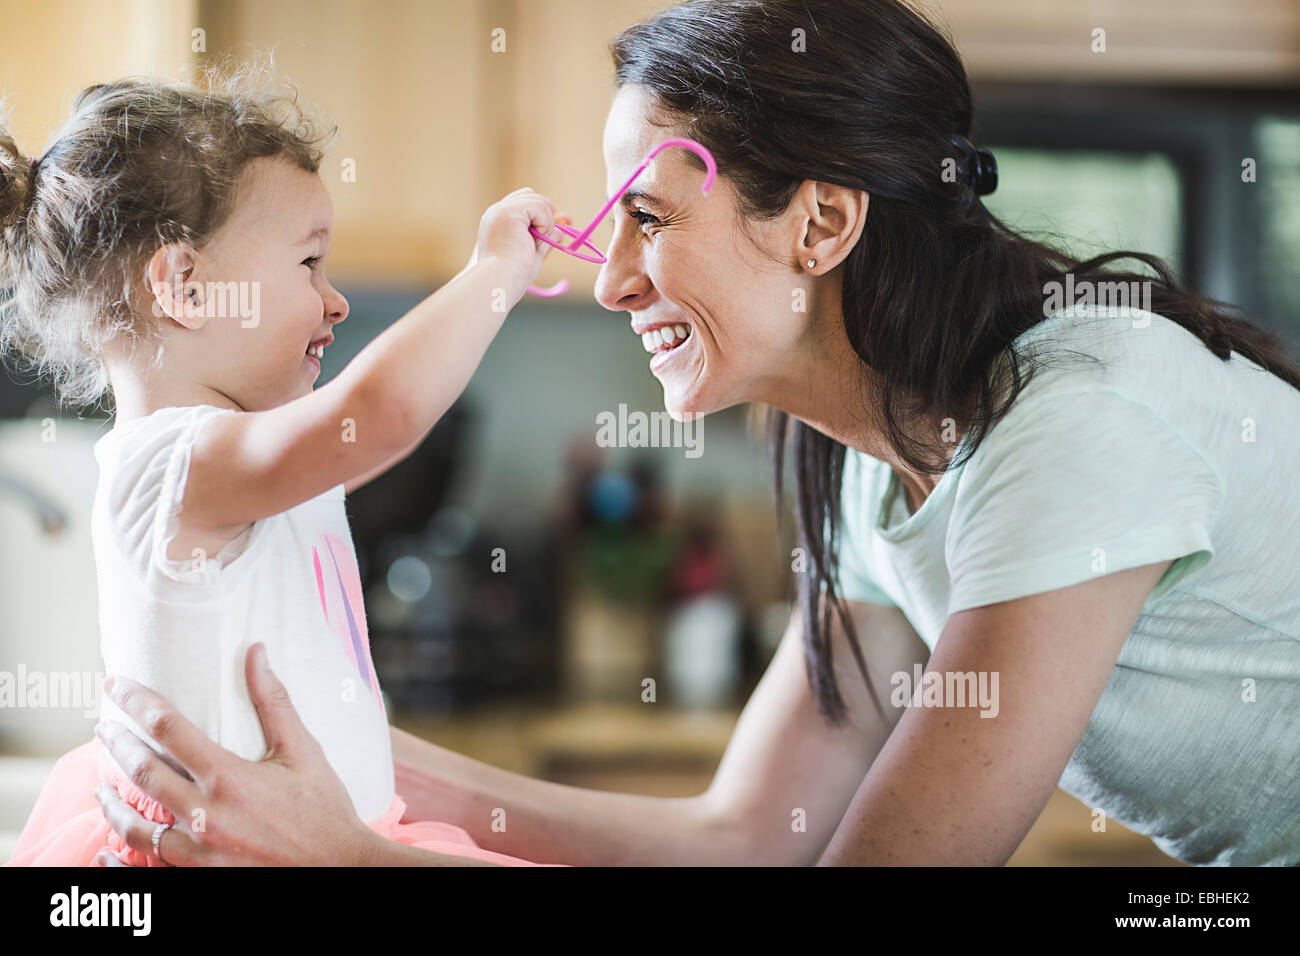 Mother and daughter playing in kitchen Stock Photo